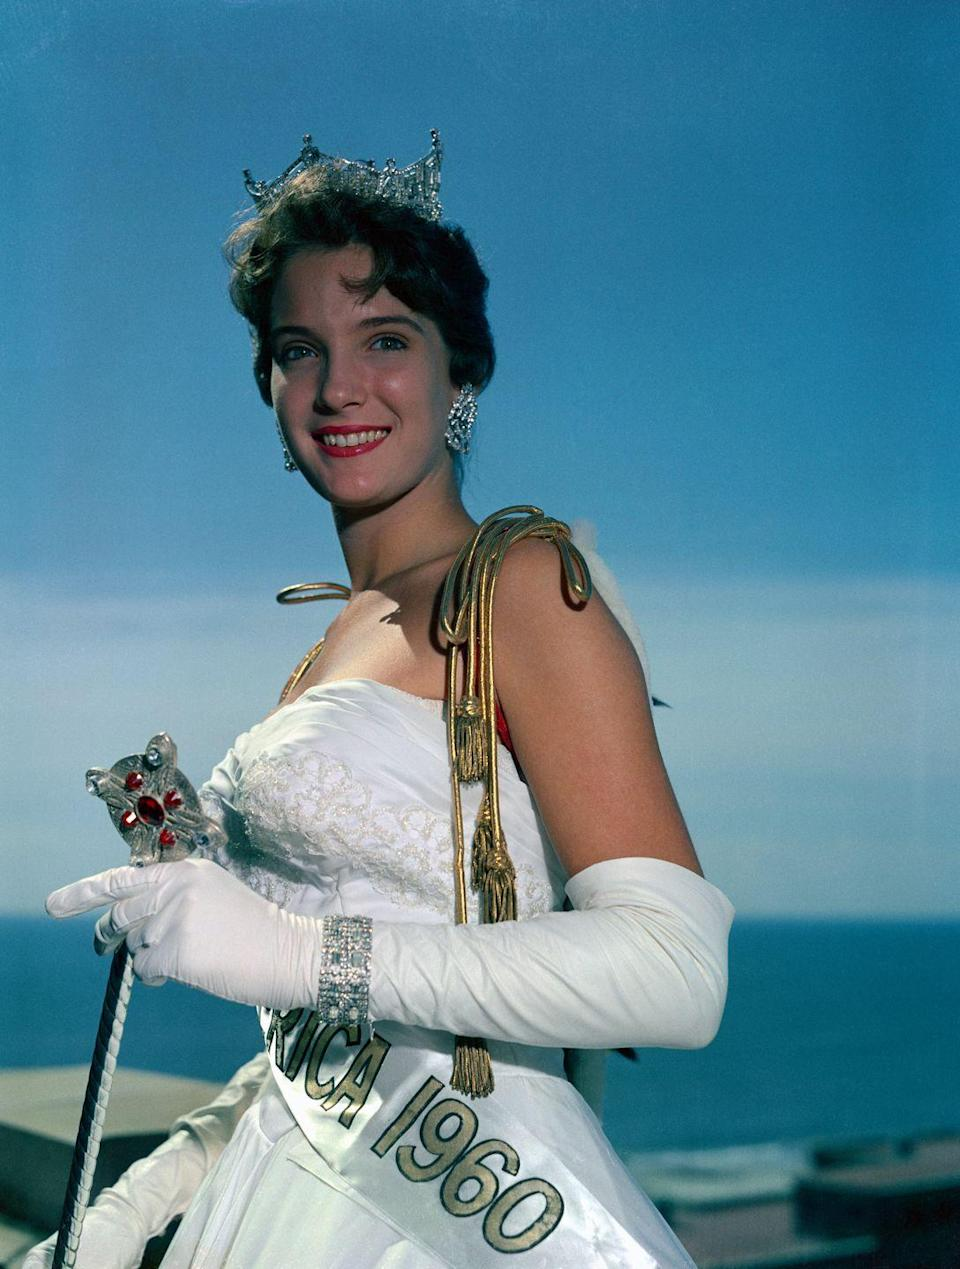 <p>Lynda Mead from Mississippi smiles for the camera in her white strapless gown—a design that, for the time, was rather risqué.</p>